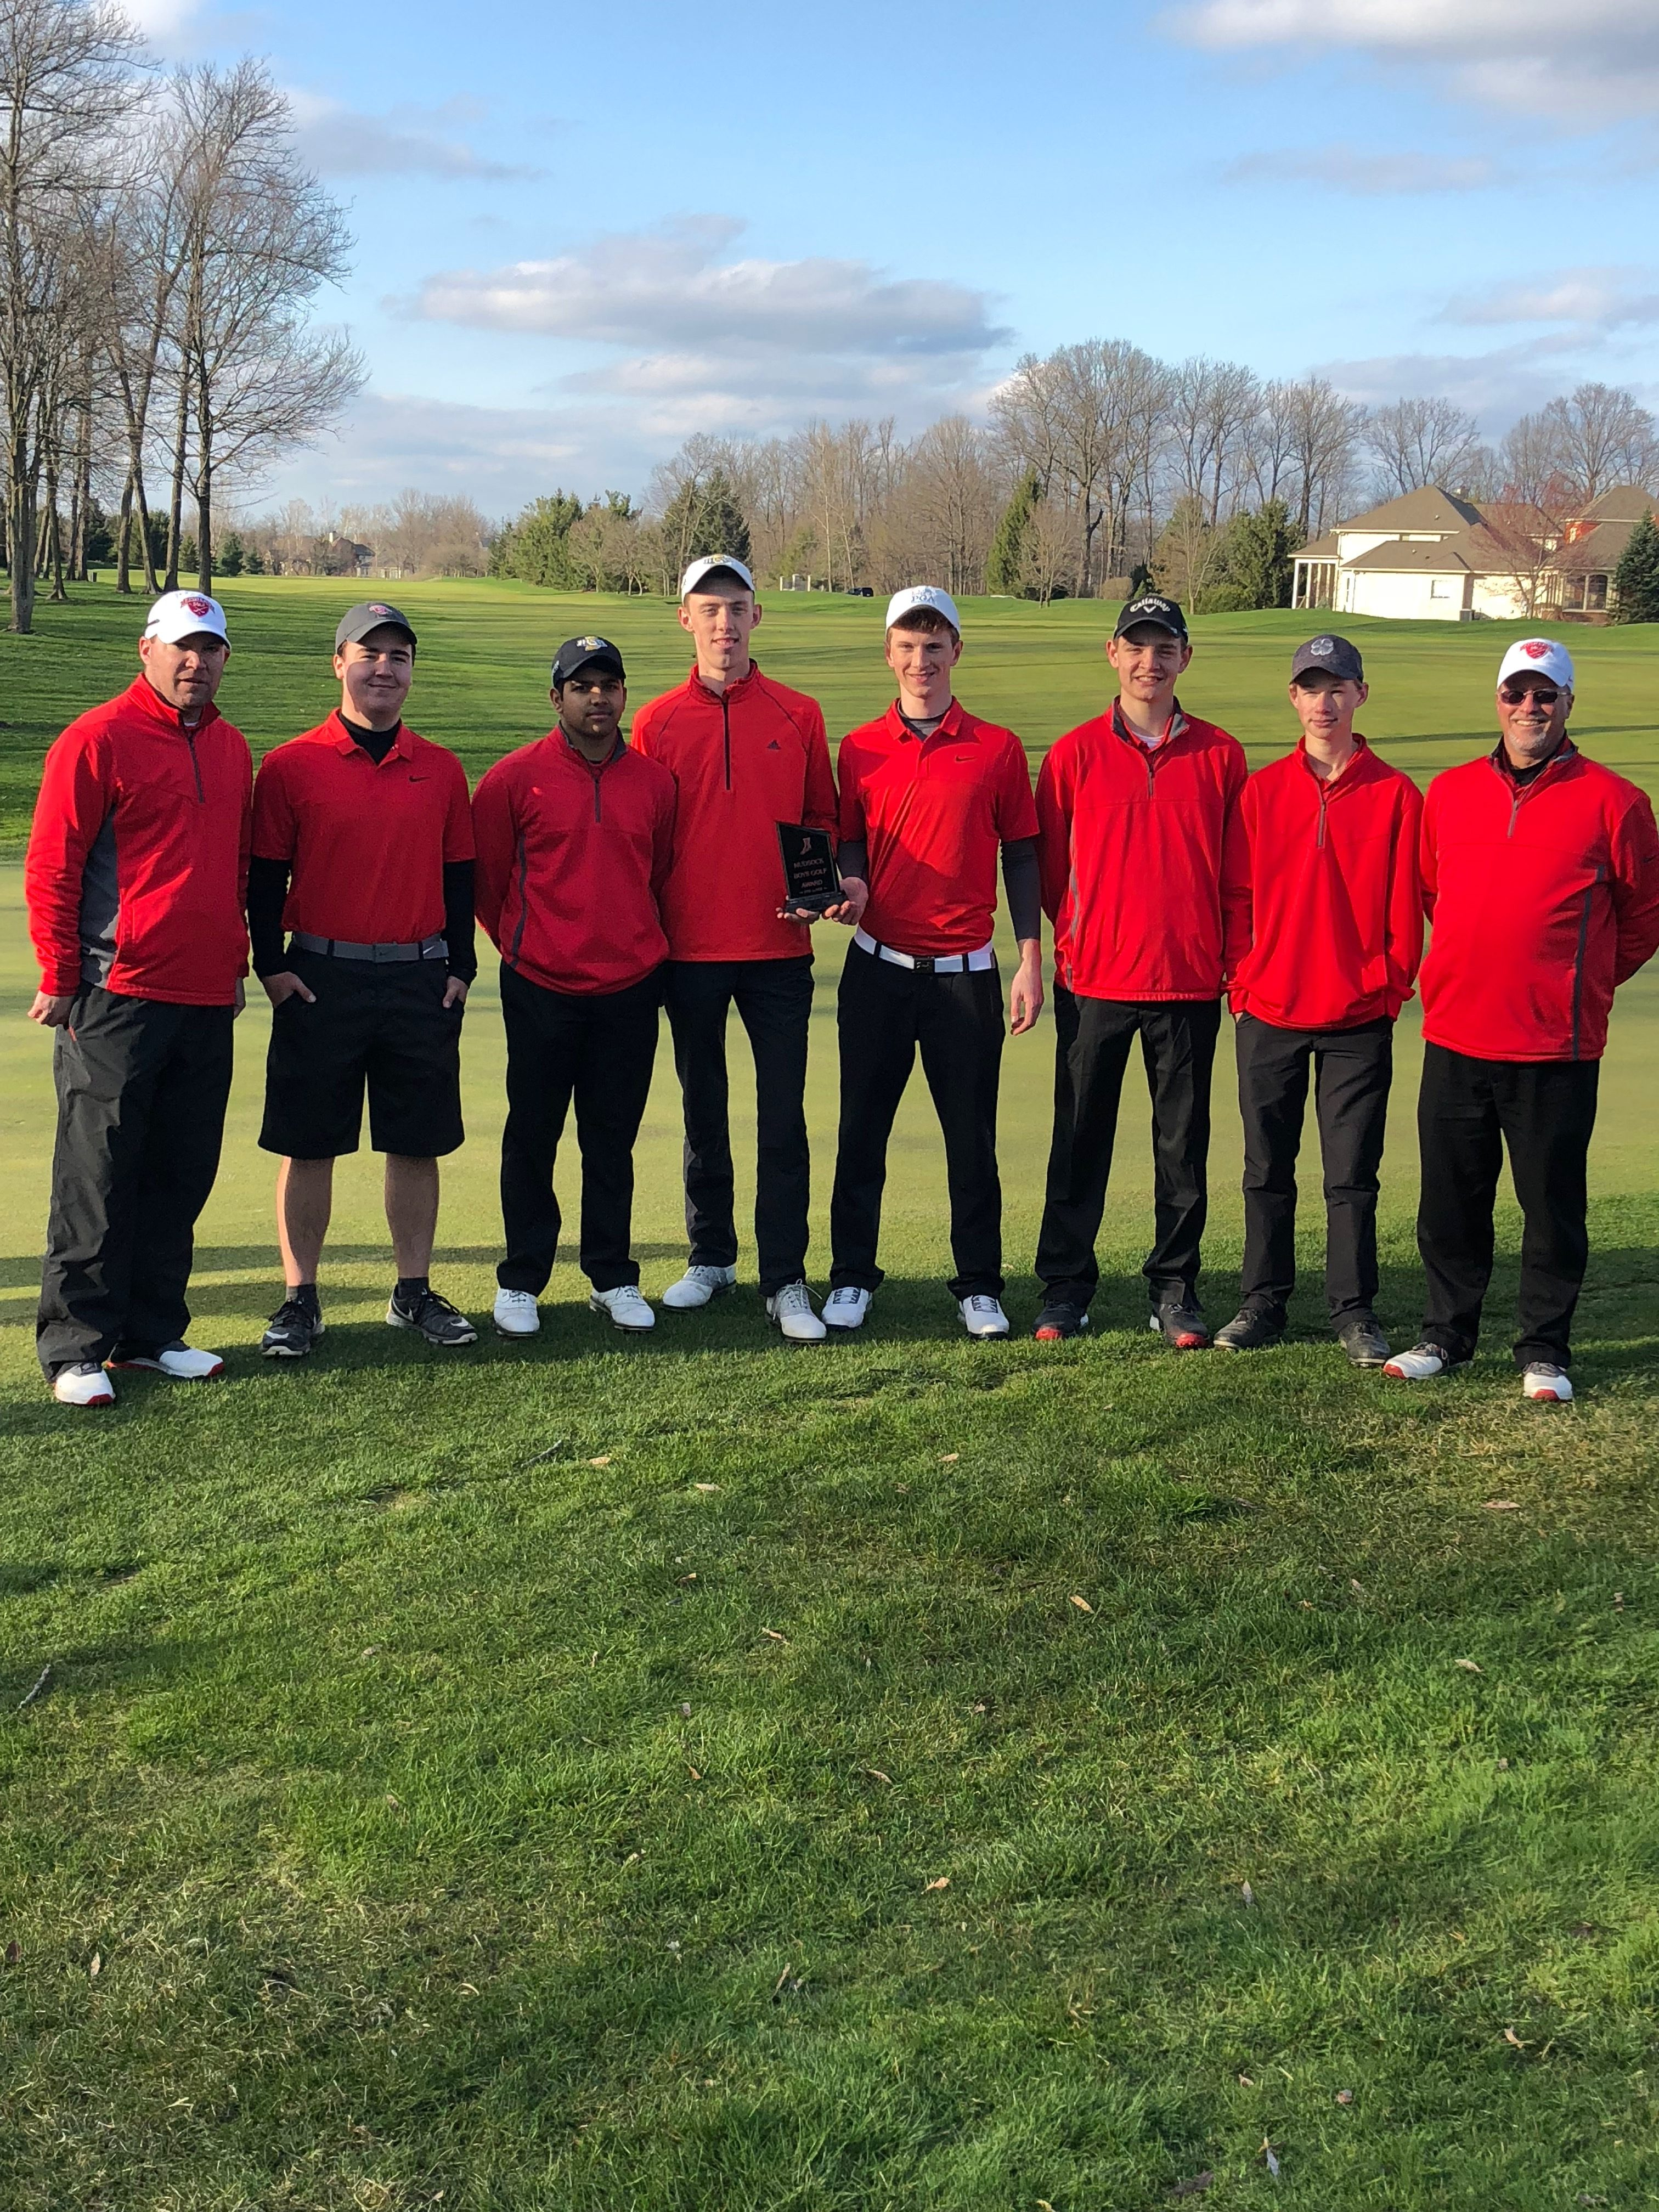 Fishers wins the Mudsock Golf Meet